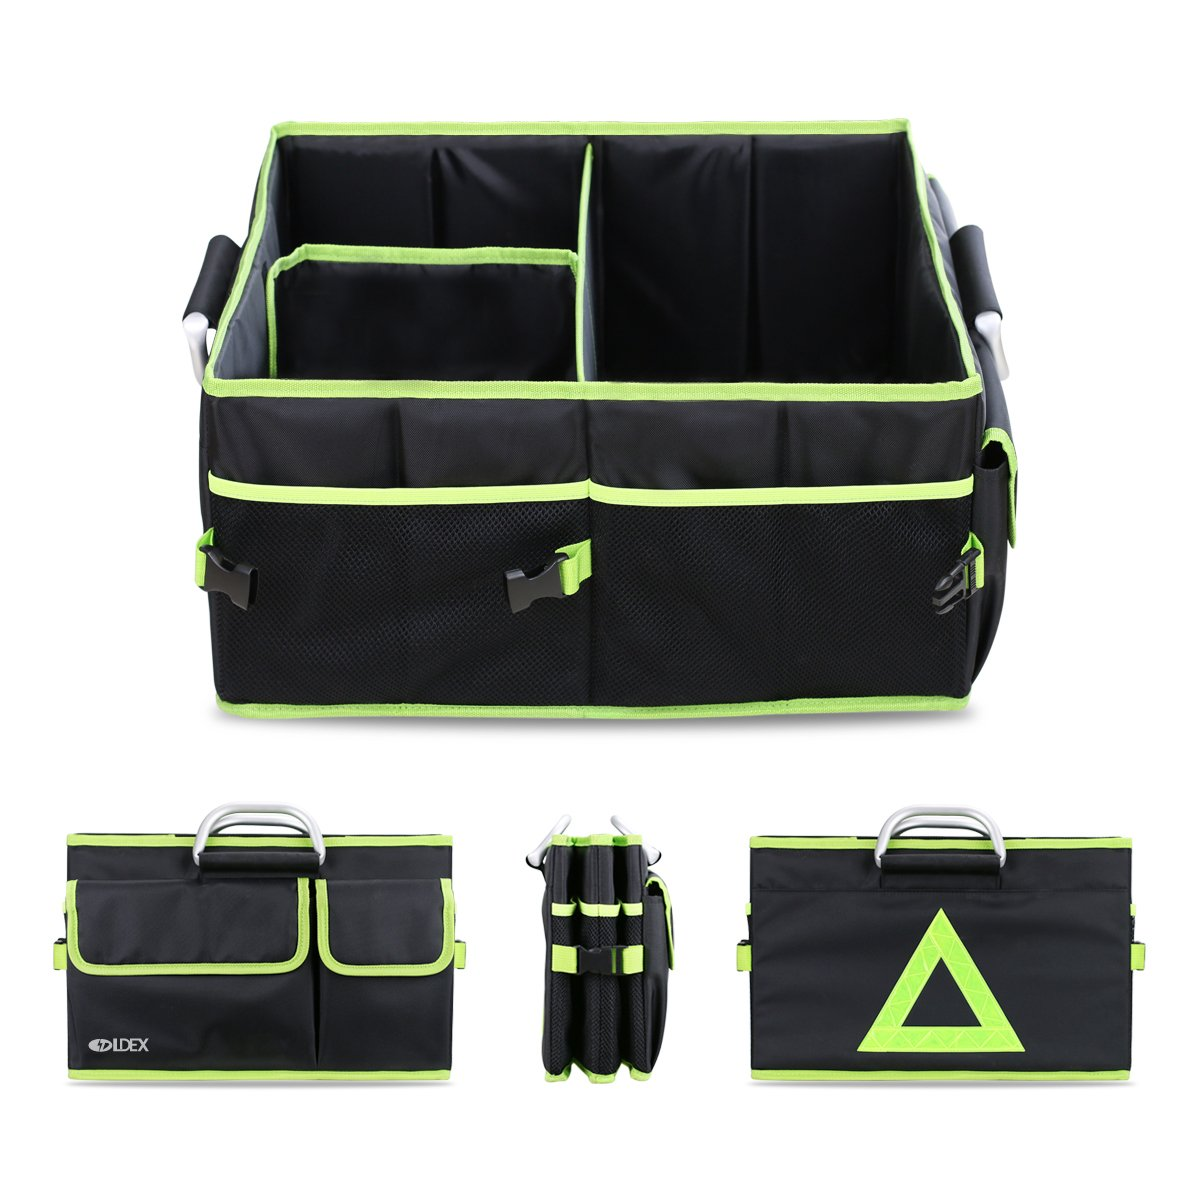 Car Trunk Organizer Foldable Storage Bag Tote Shopping Box Cooler And Tool For Groceries Tools Picnic Travel Motorbike